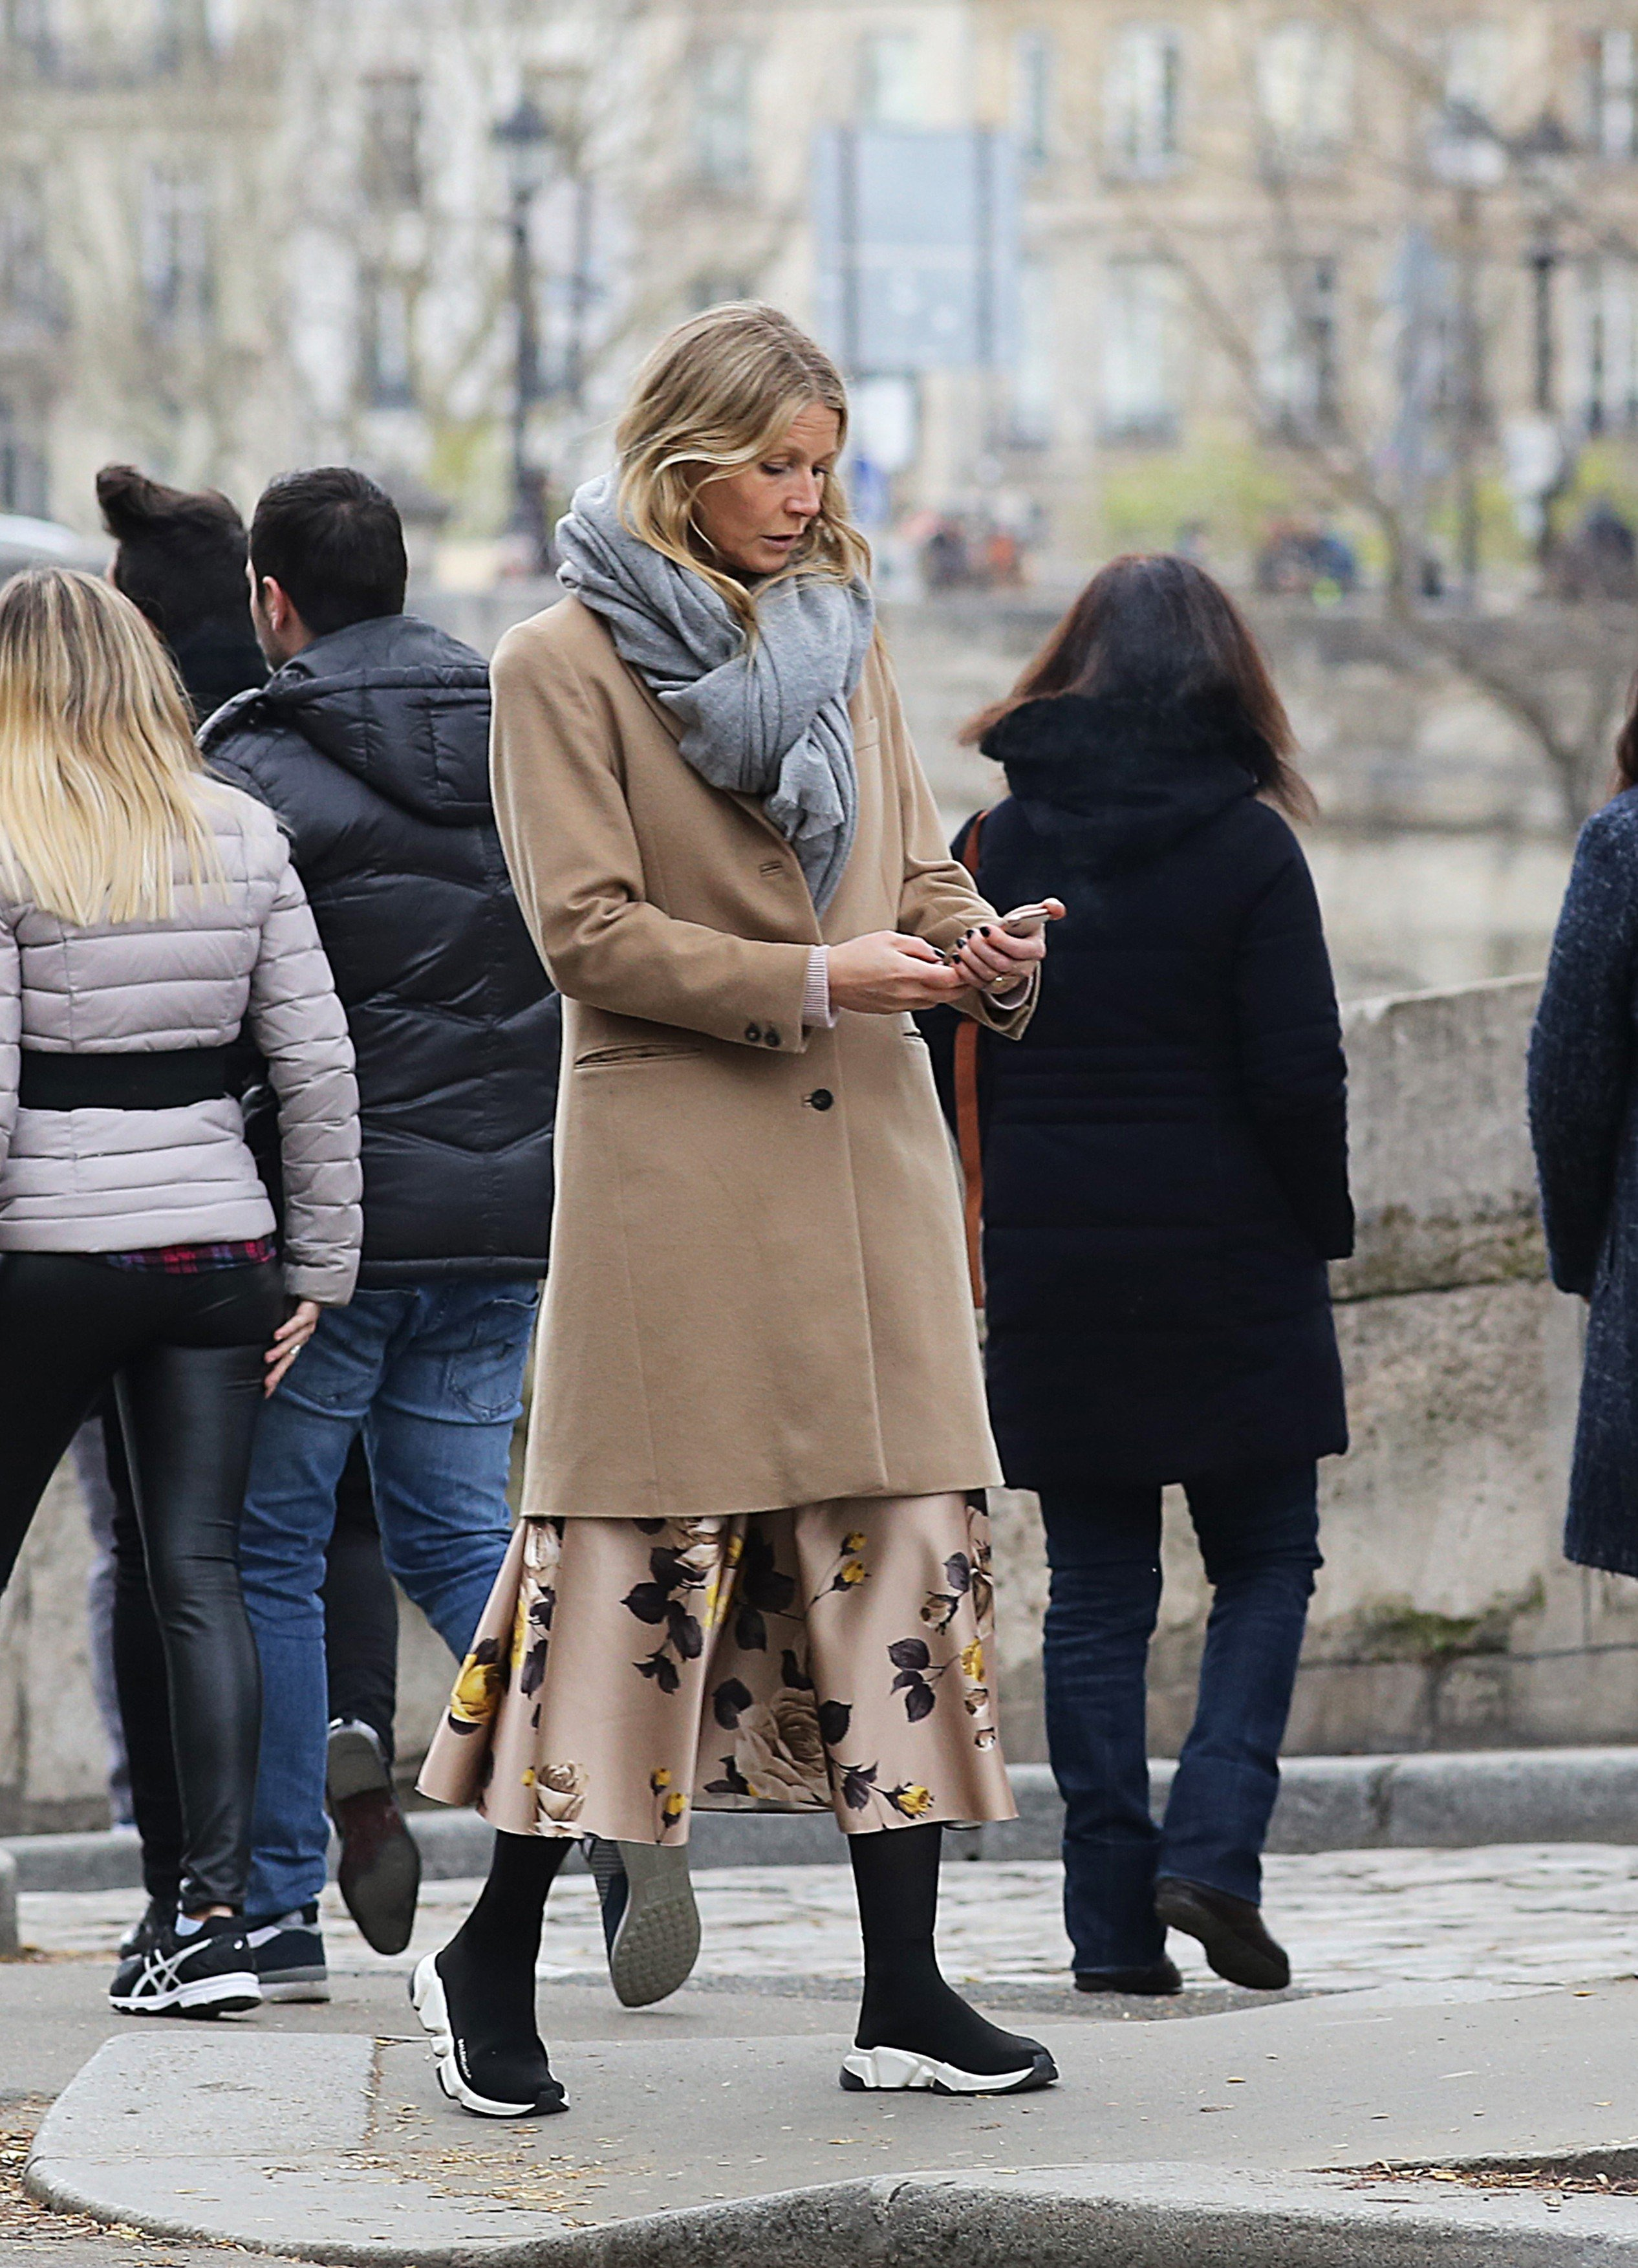 EXCLUSIVE: *NO WEB UNTIL 2200 GMT 4TH APRIL* Coldplay singer, Chris Martin and US Actress Gwyneth Paltrow spend easter weekend in Paris with their kids. The couple were seen walking along the banks of the Seine river in the French capital and in ST Germain des prés. Paris. The couple looked stylish for the outing as they indulged in conversation. 01 Apr 2018, Image: 367652562, License: Rights-managed, Restrictions: NO Andorra, Argentina, Austria, Belgium, Bolivia, Chile, China, Costa Rica, Croatia, Czech Republic, El Salvador, Estonia, Finland, France, French Guiana, French Polynesia, French Southern Ter, Greece, Guadeloupe, Guatemala, Honduras, Hungary, Japan, Latvia, Lithuania, Macedonia, Mexico, Monaco, Netherlands, Paraguay, Peru, Poland, Portugal, Puerto Rico, Romania, Russia, South Africa, Spain, Sweden, Switzerland, Taiwan, Uruguay, Venezuela, Model Release: no, Credit line: Profimedia, Mega Agency